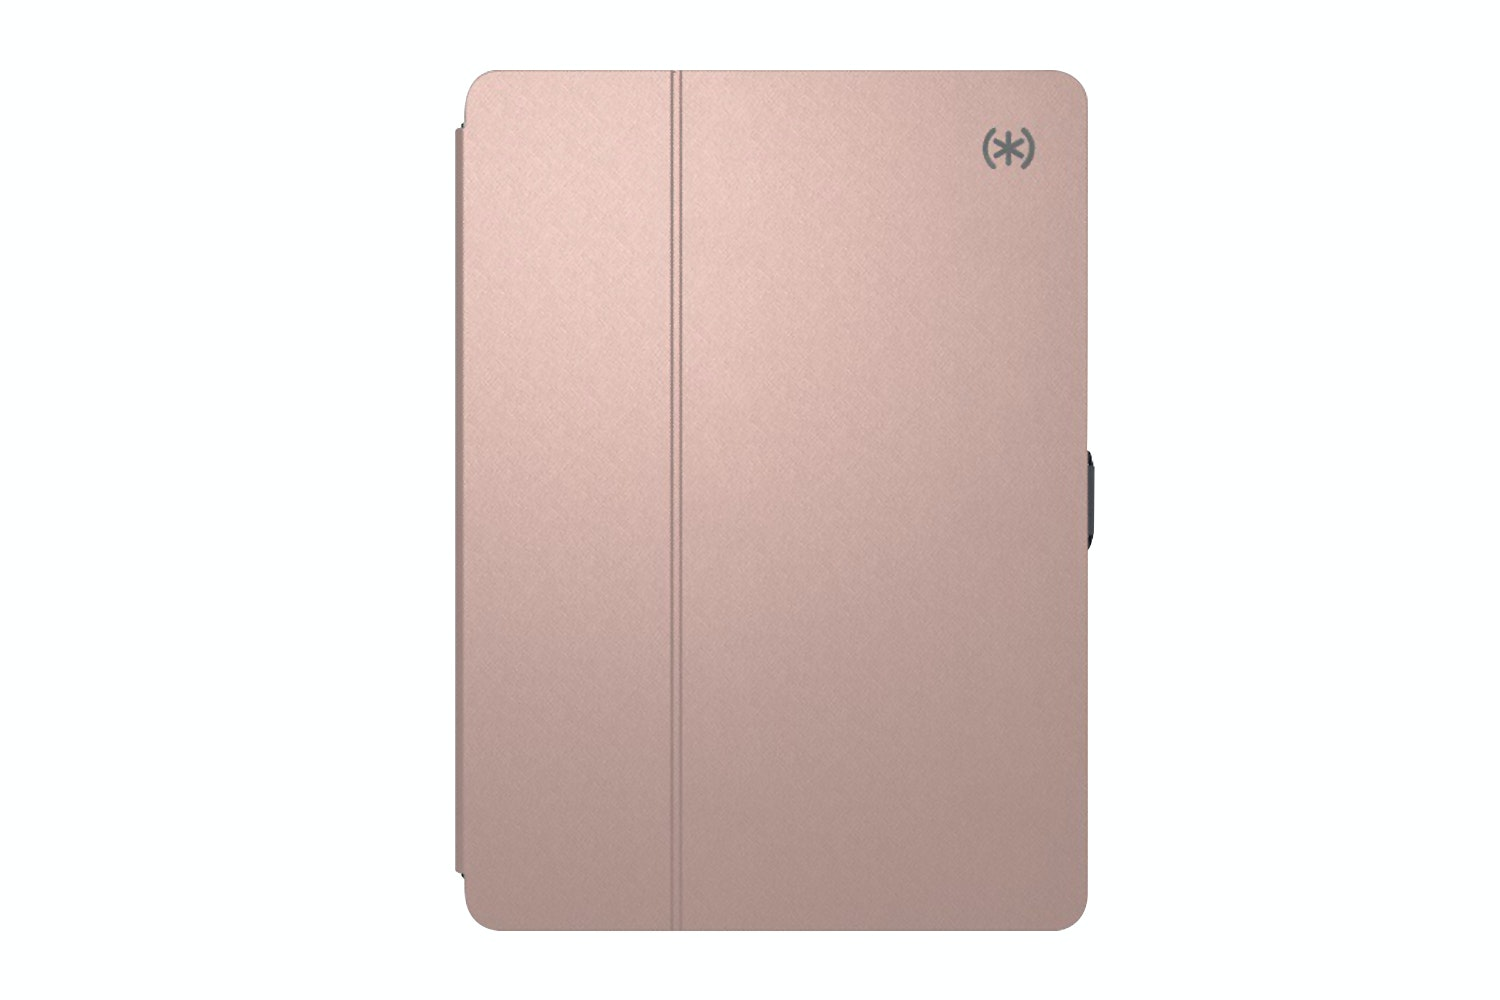 "Speck Balance Metallic Folio 9.7"" iPad Case 